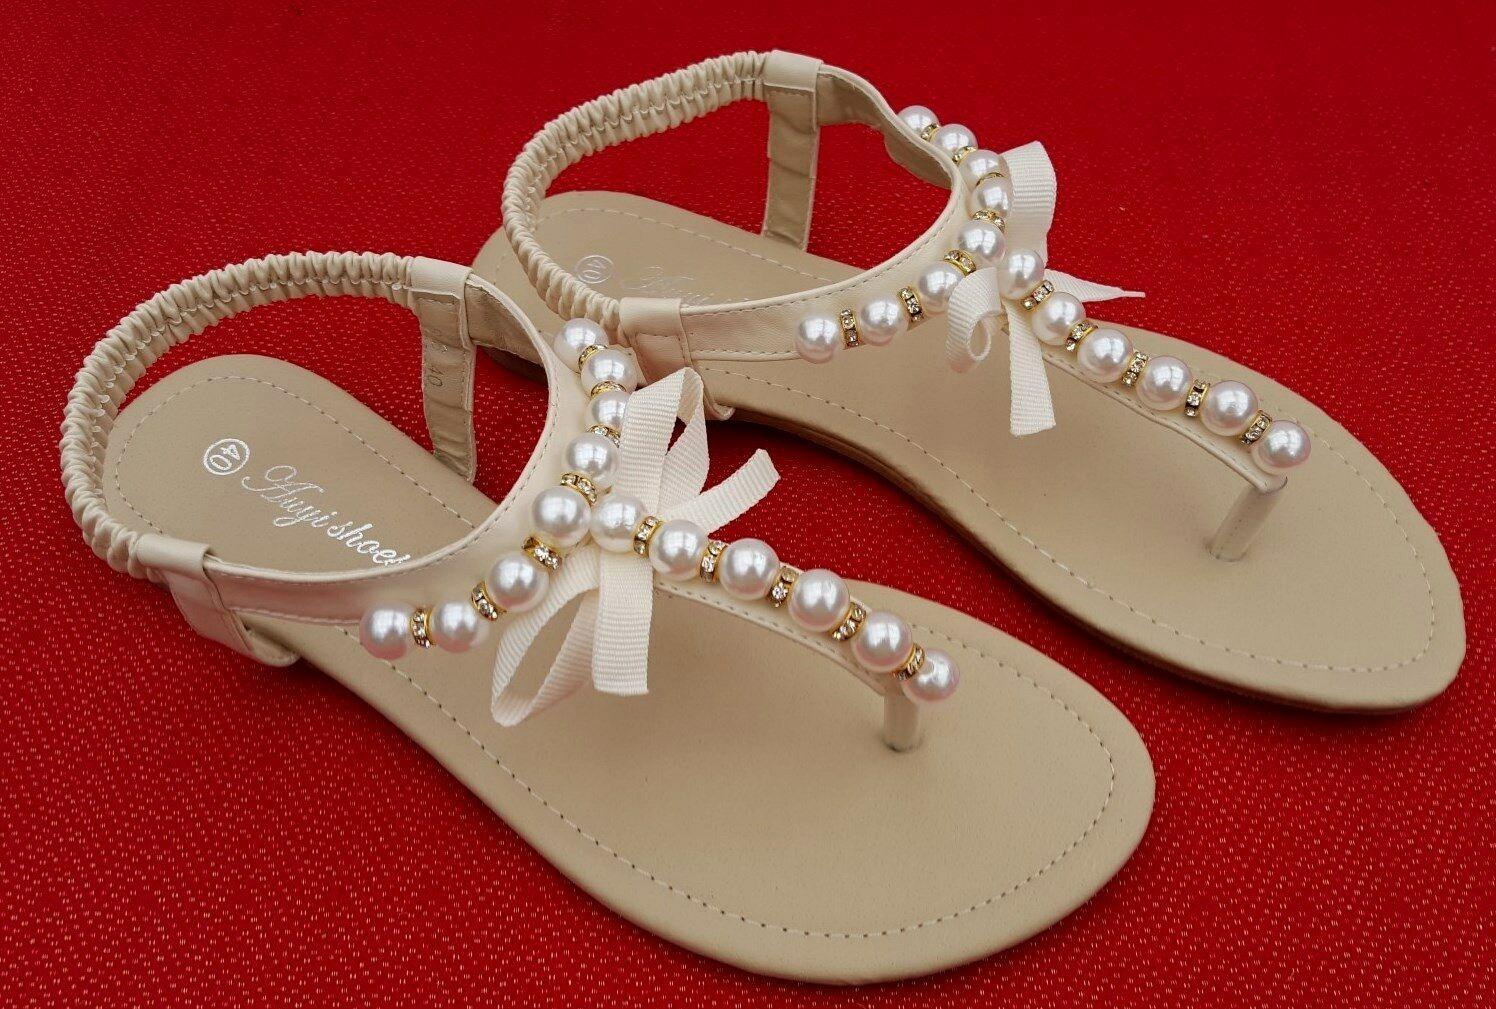 Ladies sz 11 pearl sandals thongs flats wedding bridal for Flat dress sandals for weddings